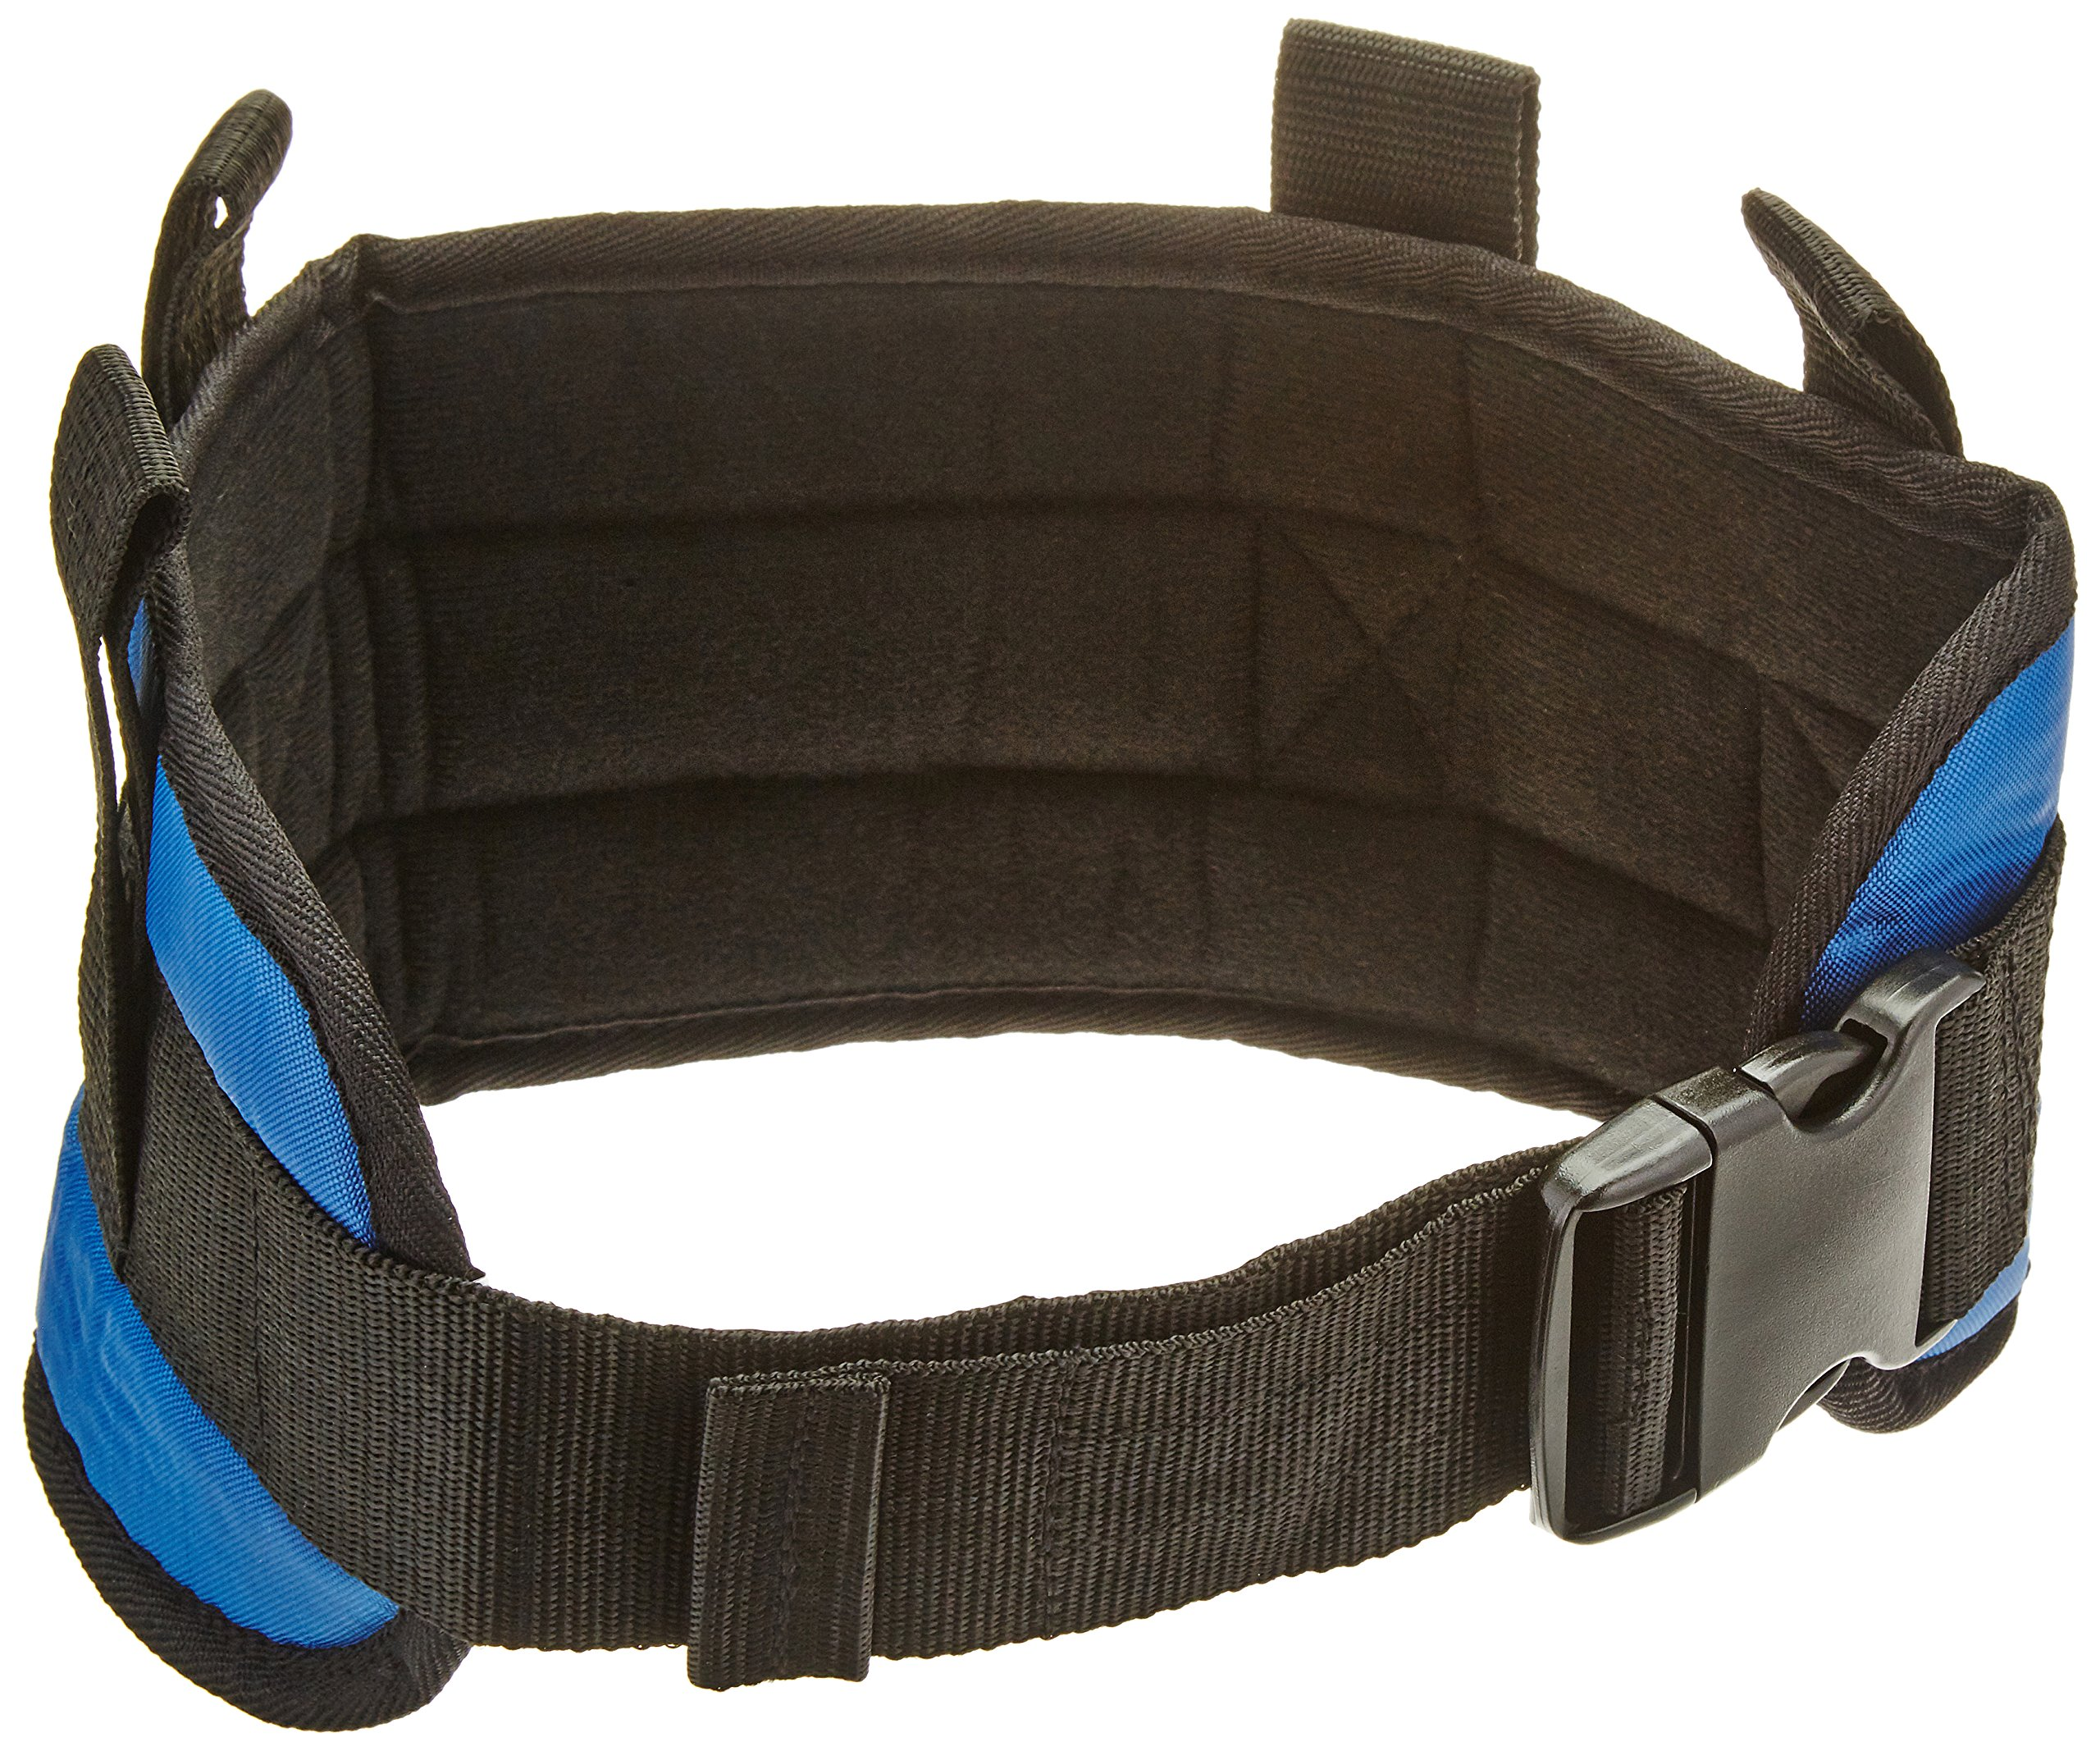 Sammons Preston Padded Gait Belt with Handles, 5.5'' Wide Transfer Belt with 4 Loops & Quick Release Buckle, Handled Limited Mobility Aid Belt for Patient Care, Blue, Small Belt Fits 24''-30'' Waist